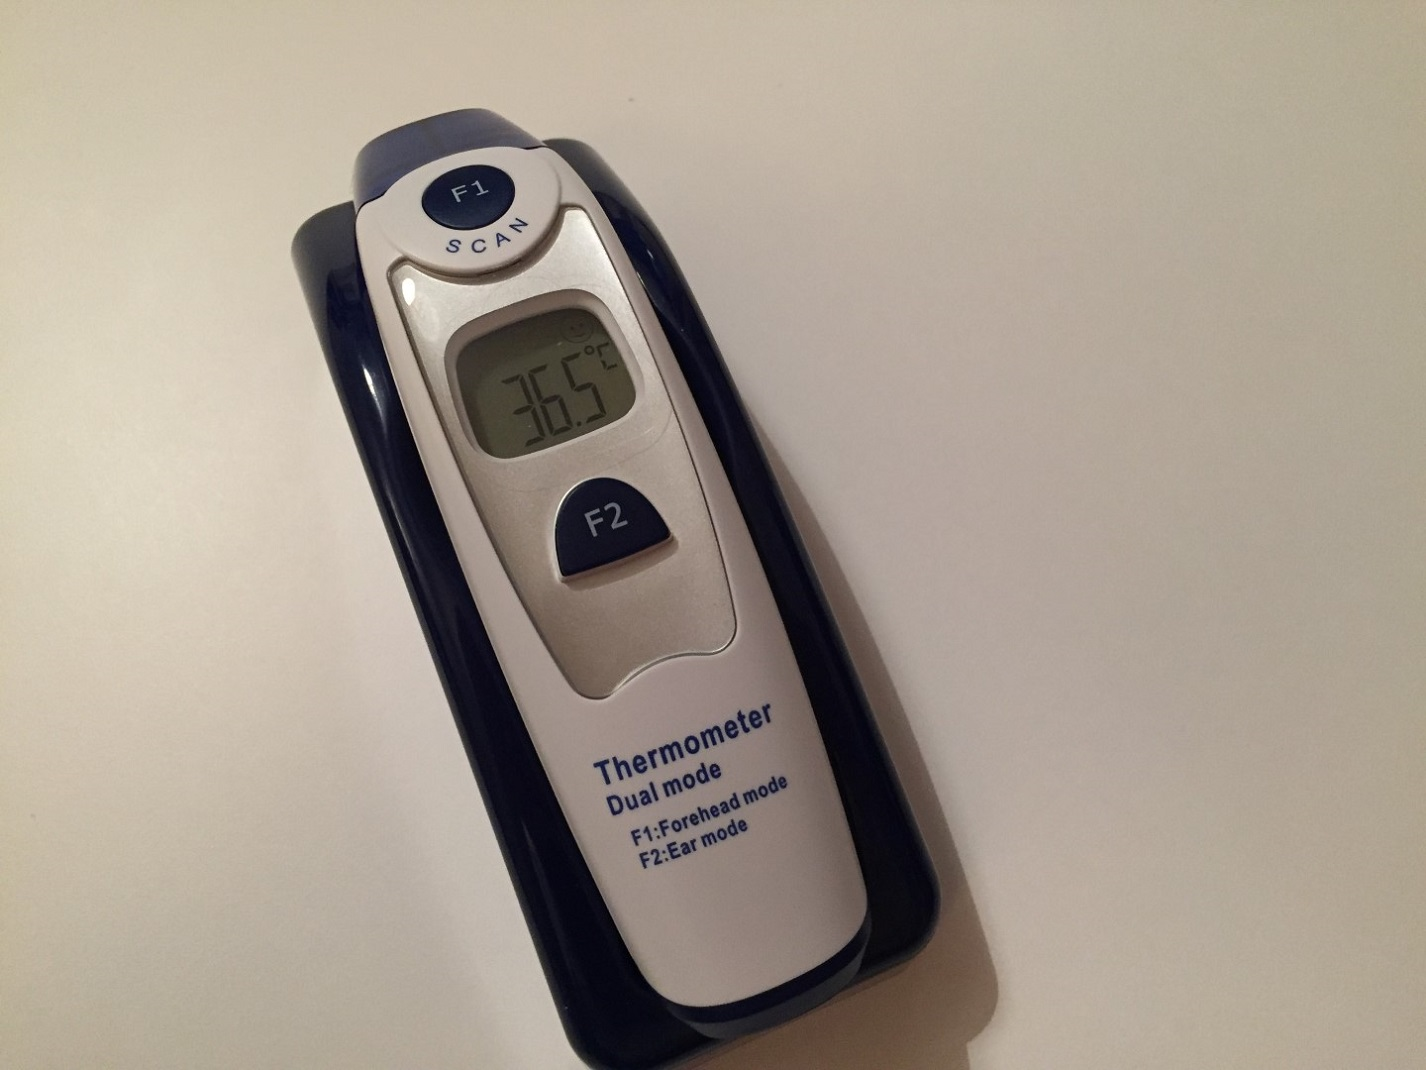 Thermometer in Use